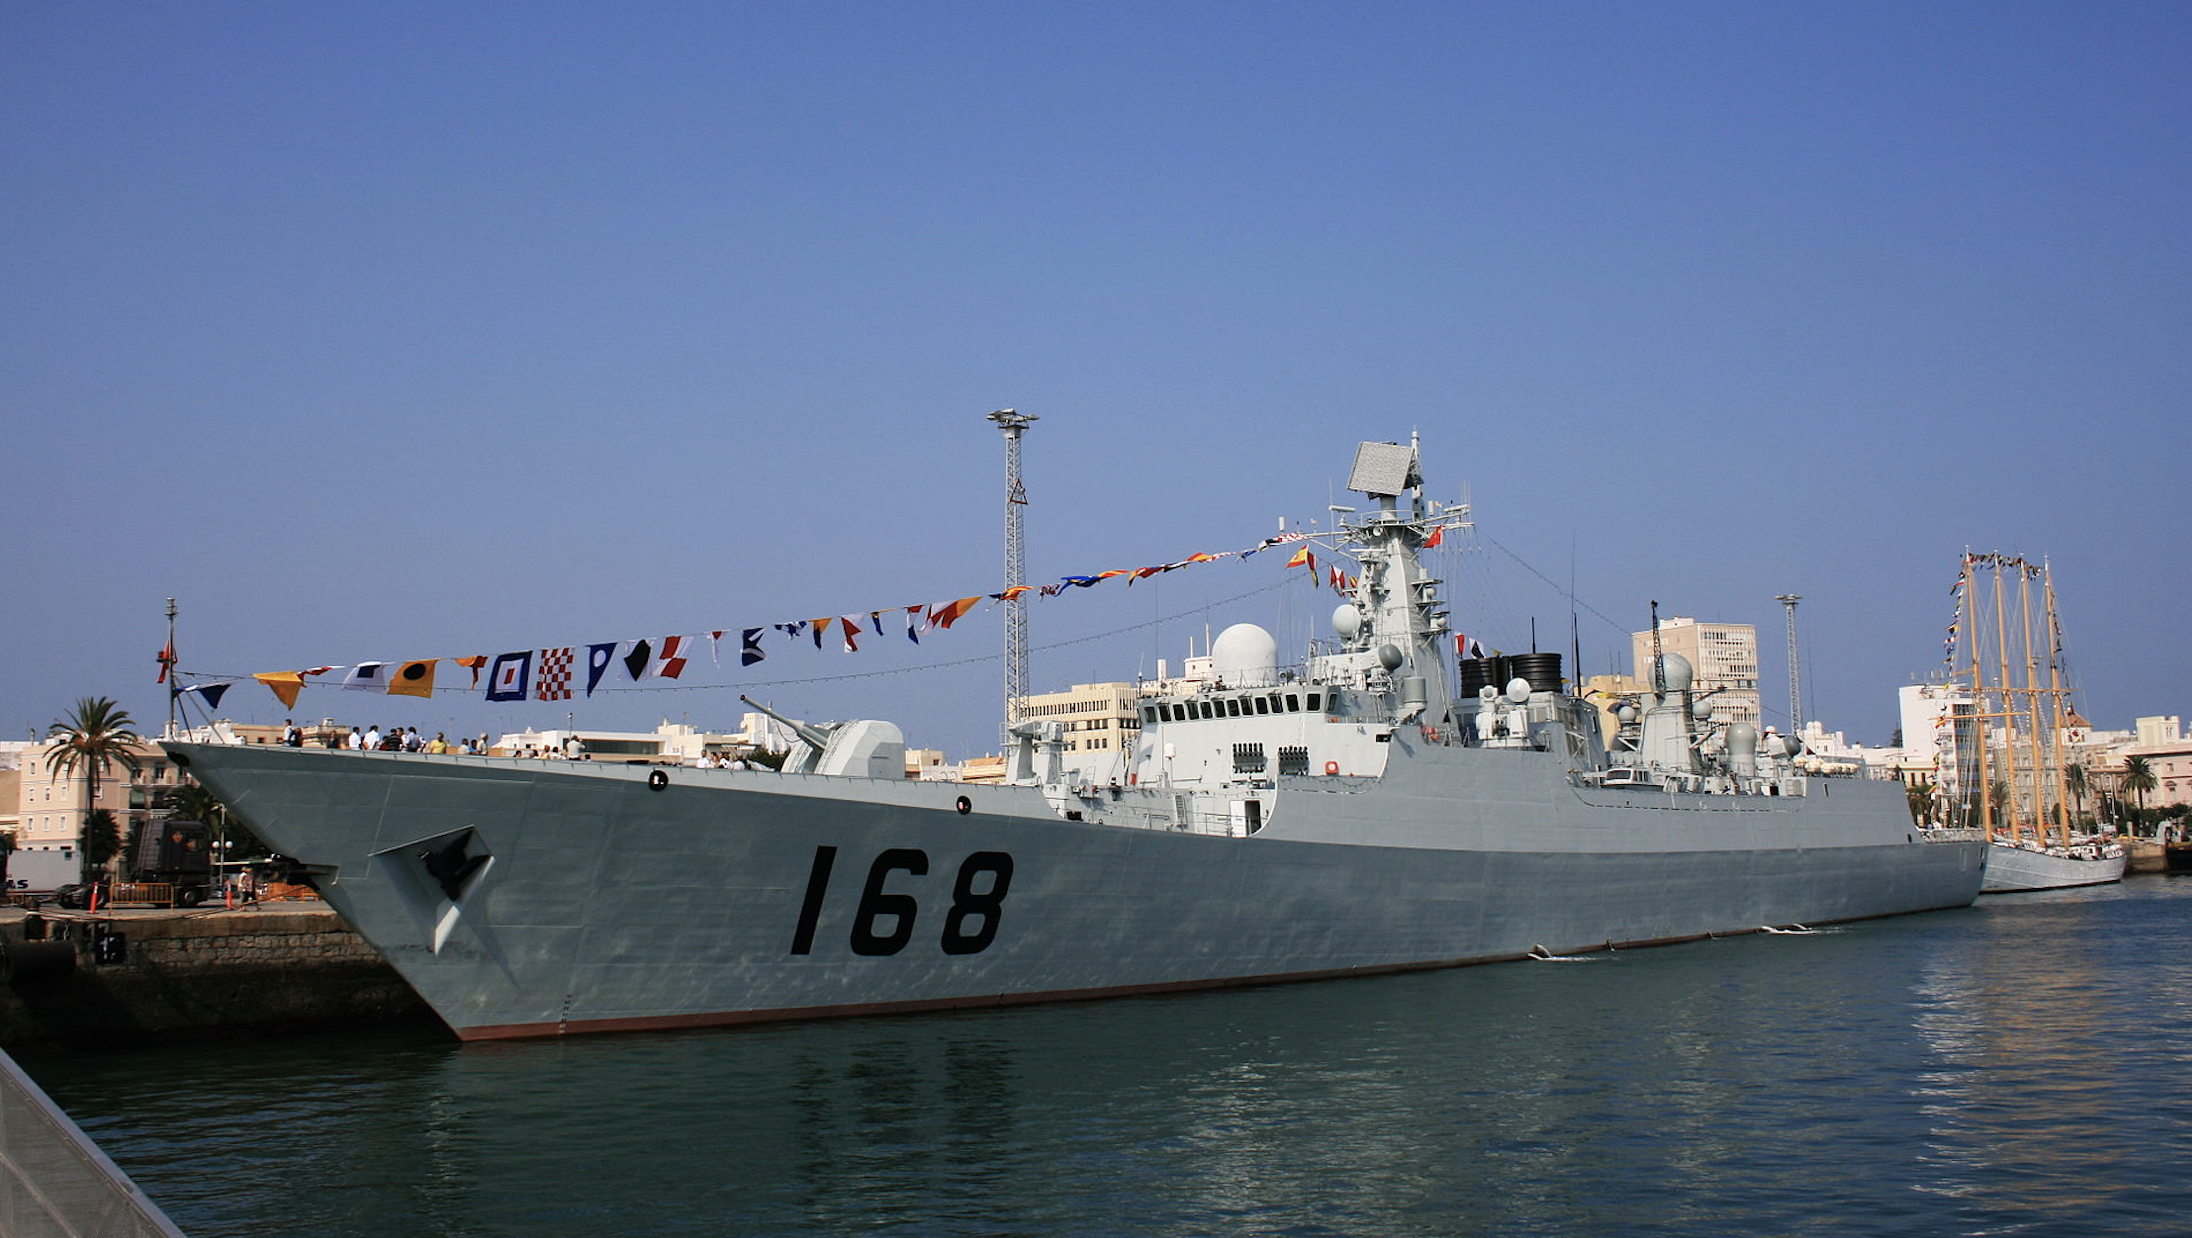 A large Chinese naval boat sits at a dock.